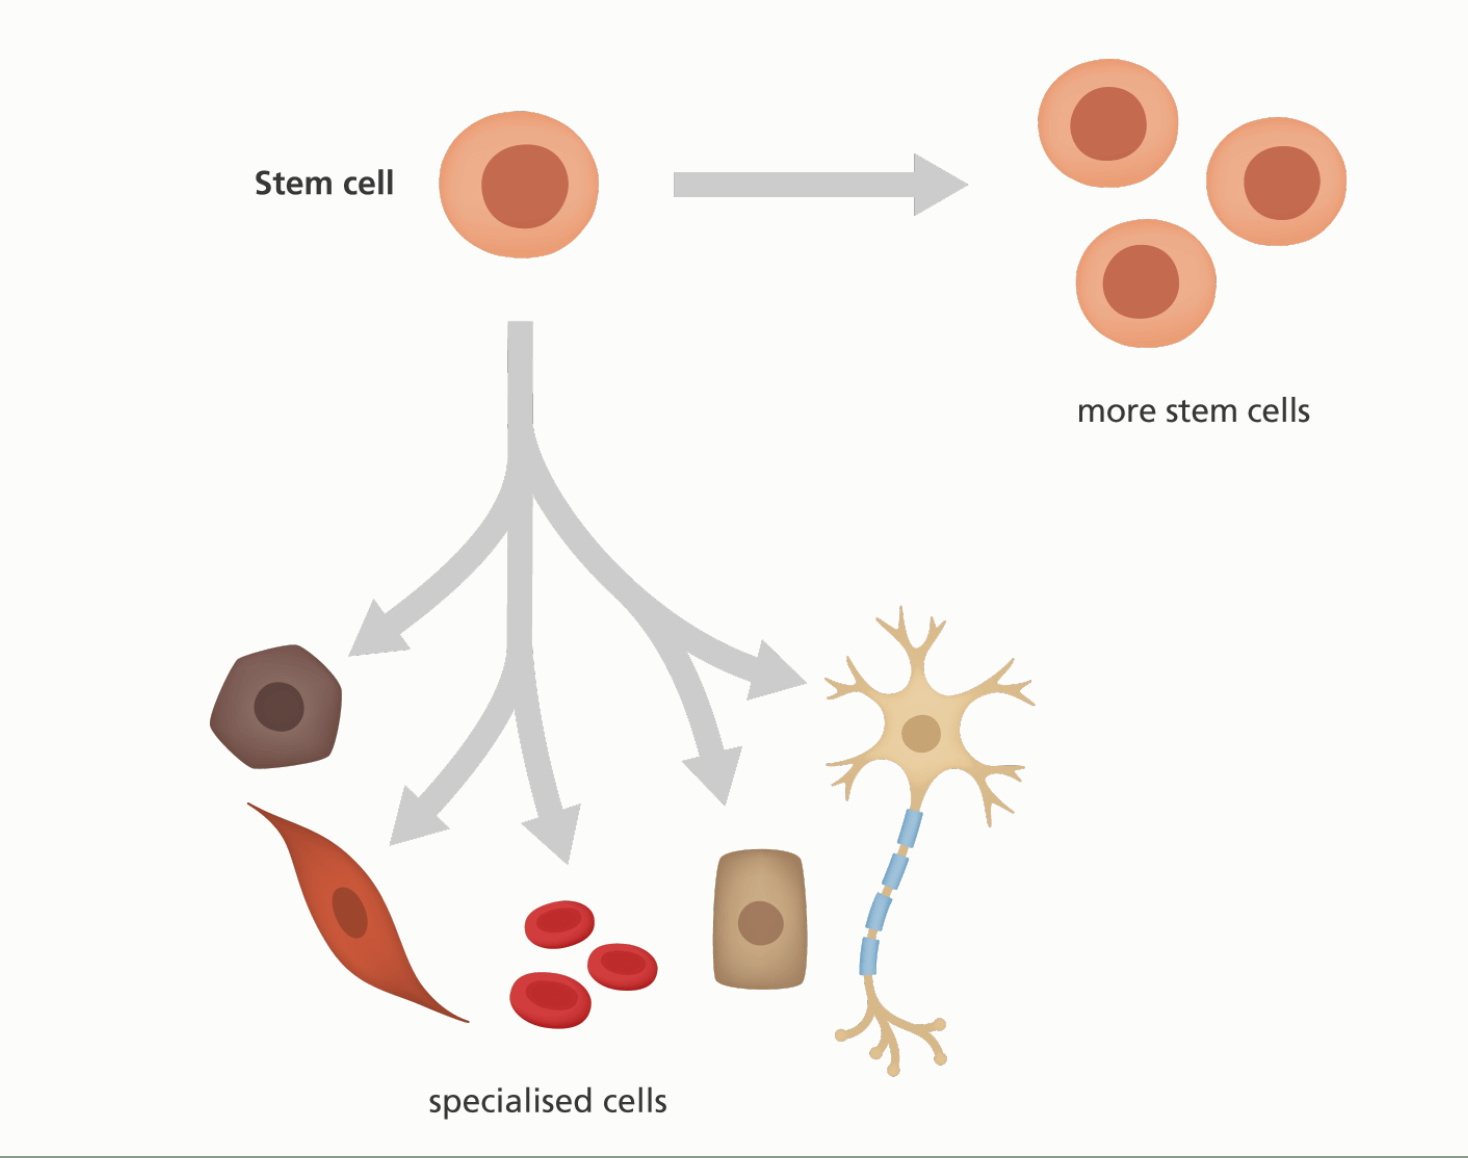 Image: An illustration showing a stem cell giving rise to more stem cells or specialised cells.